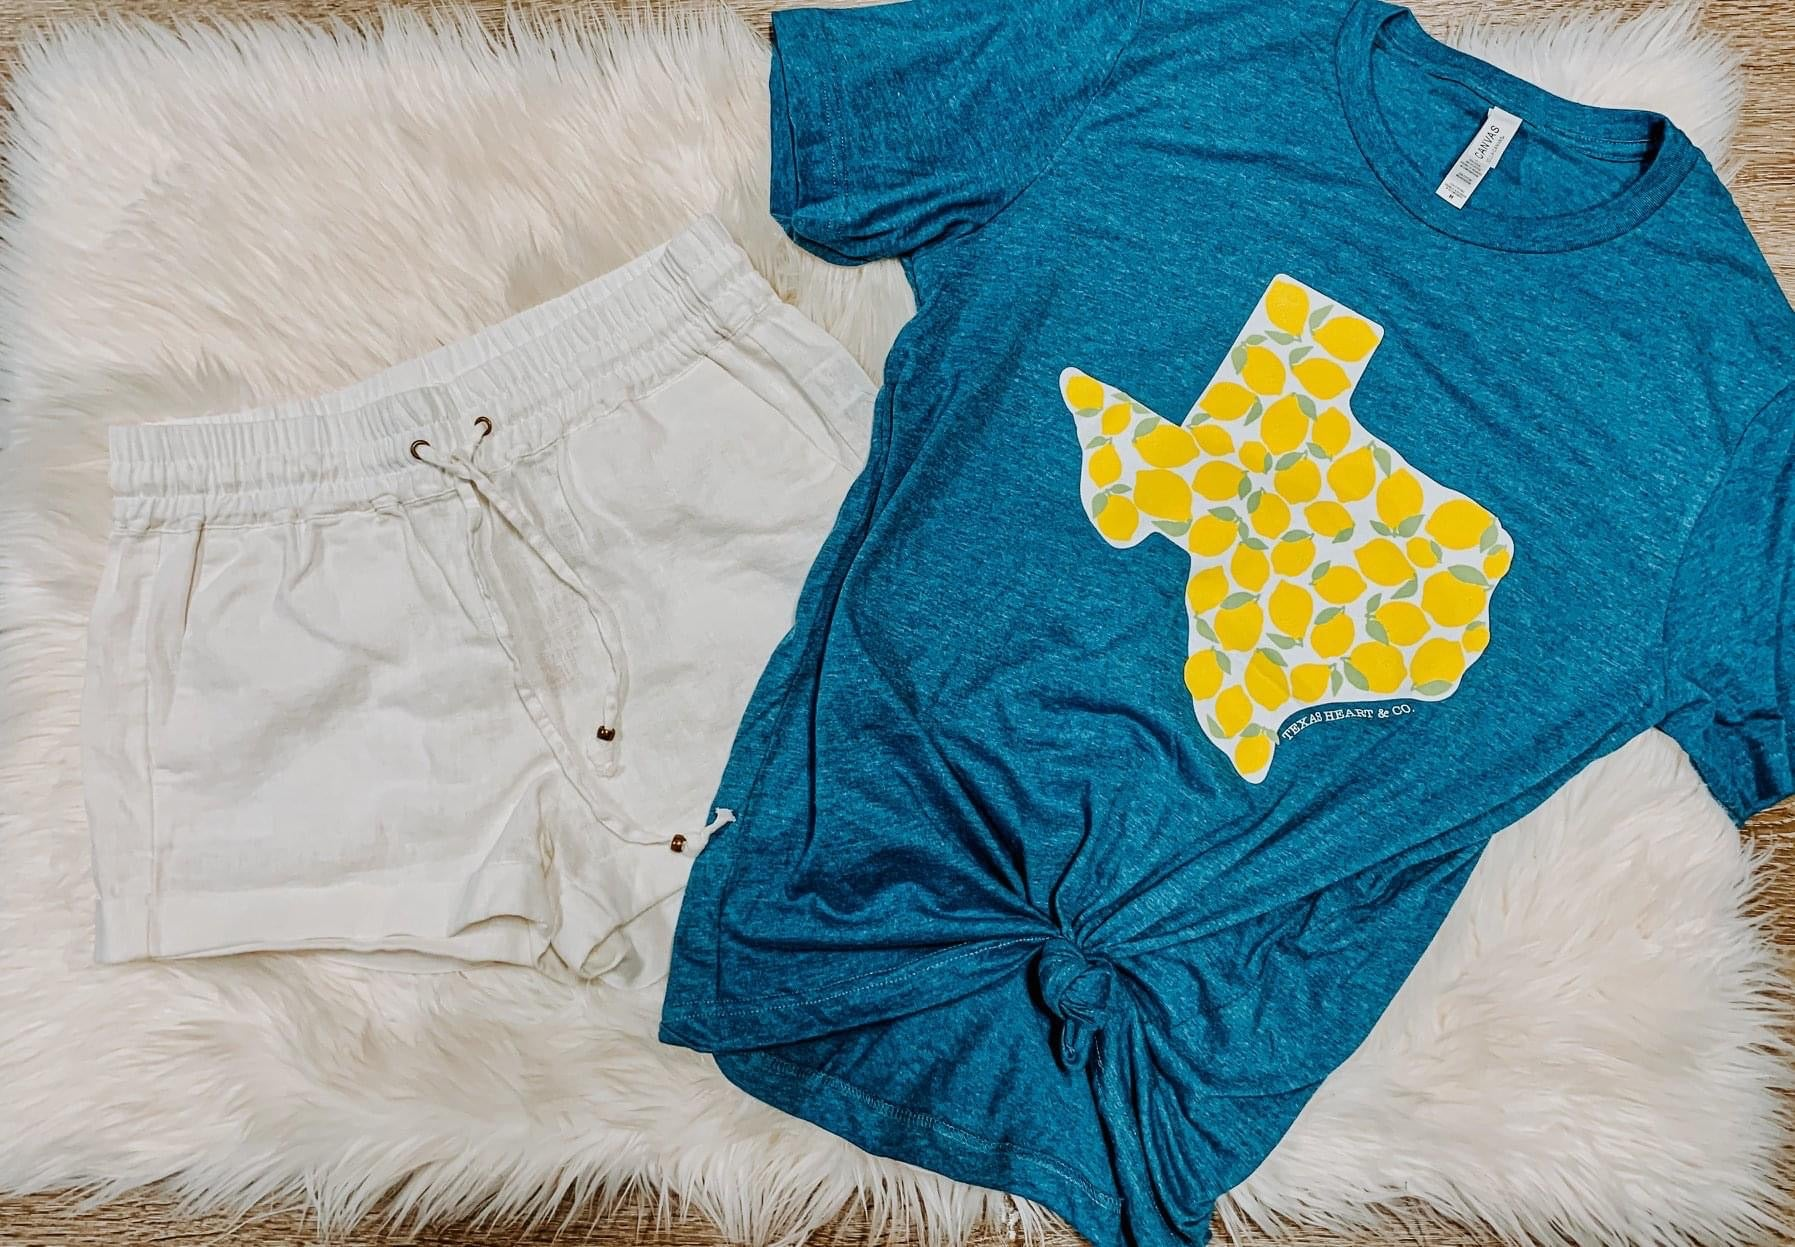 Lemon Texas T-shirt